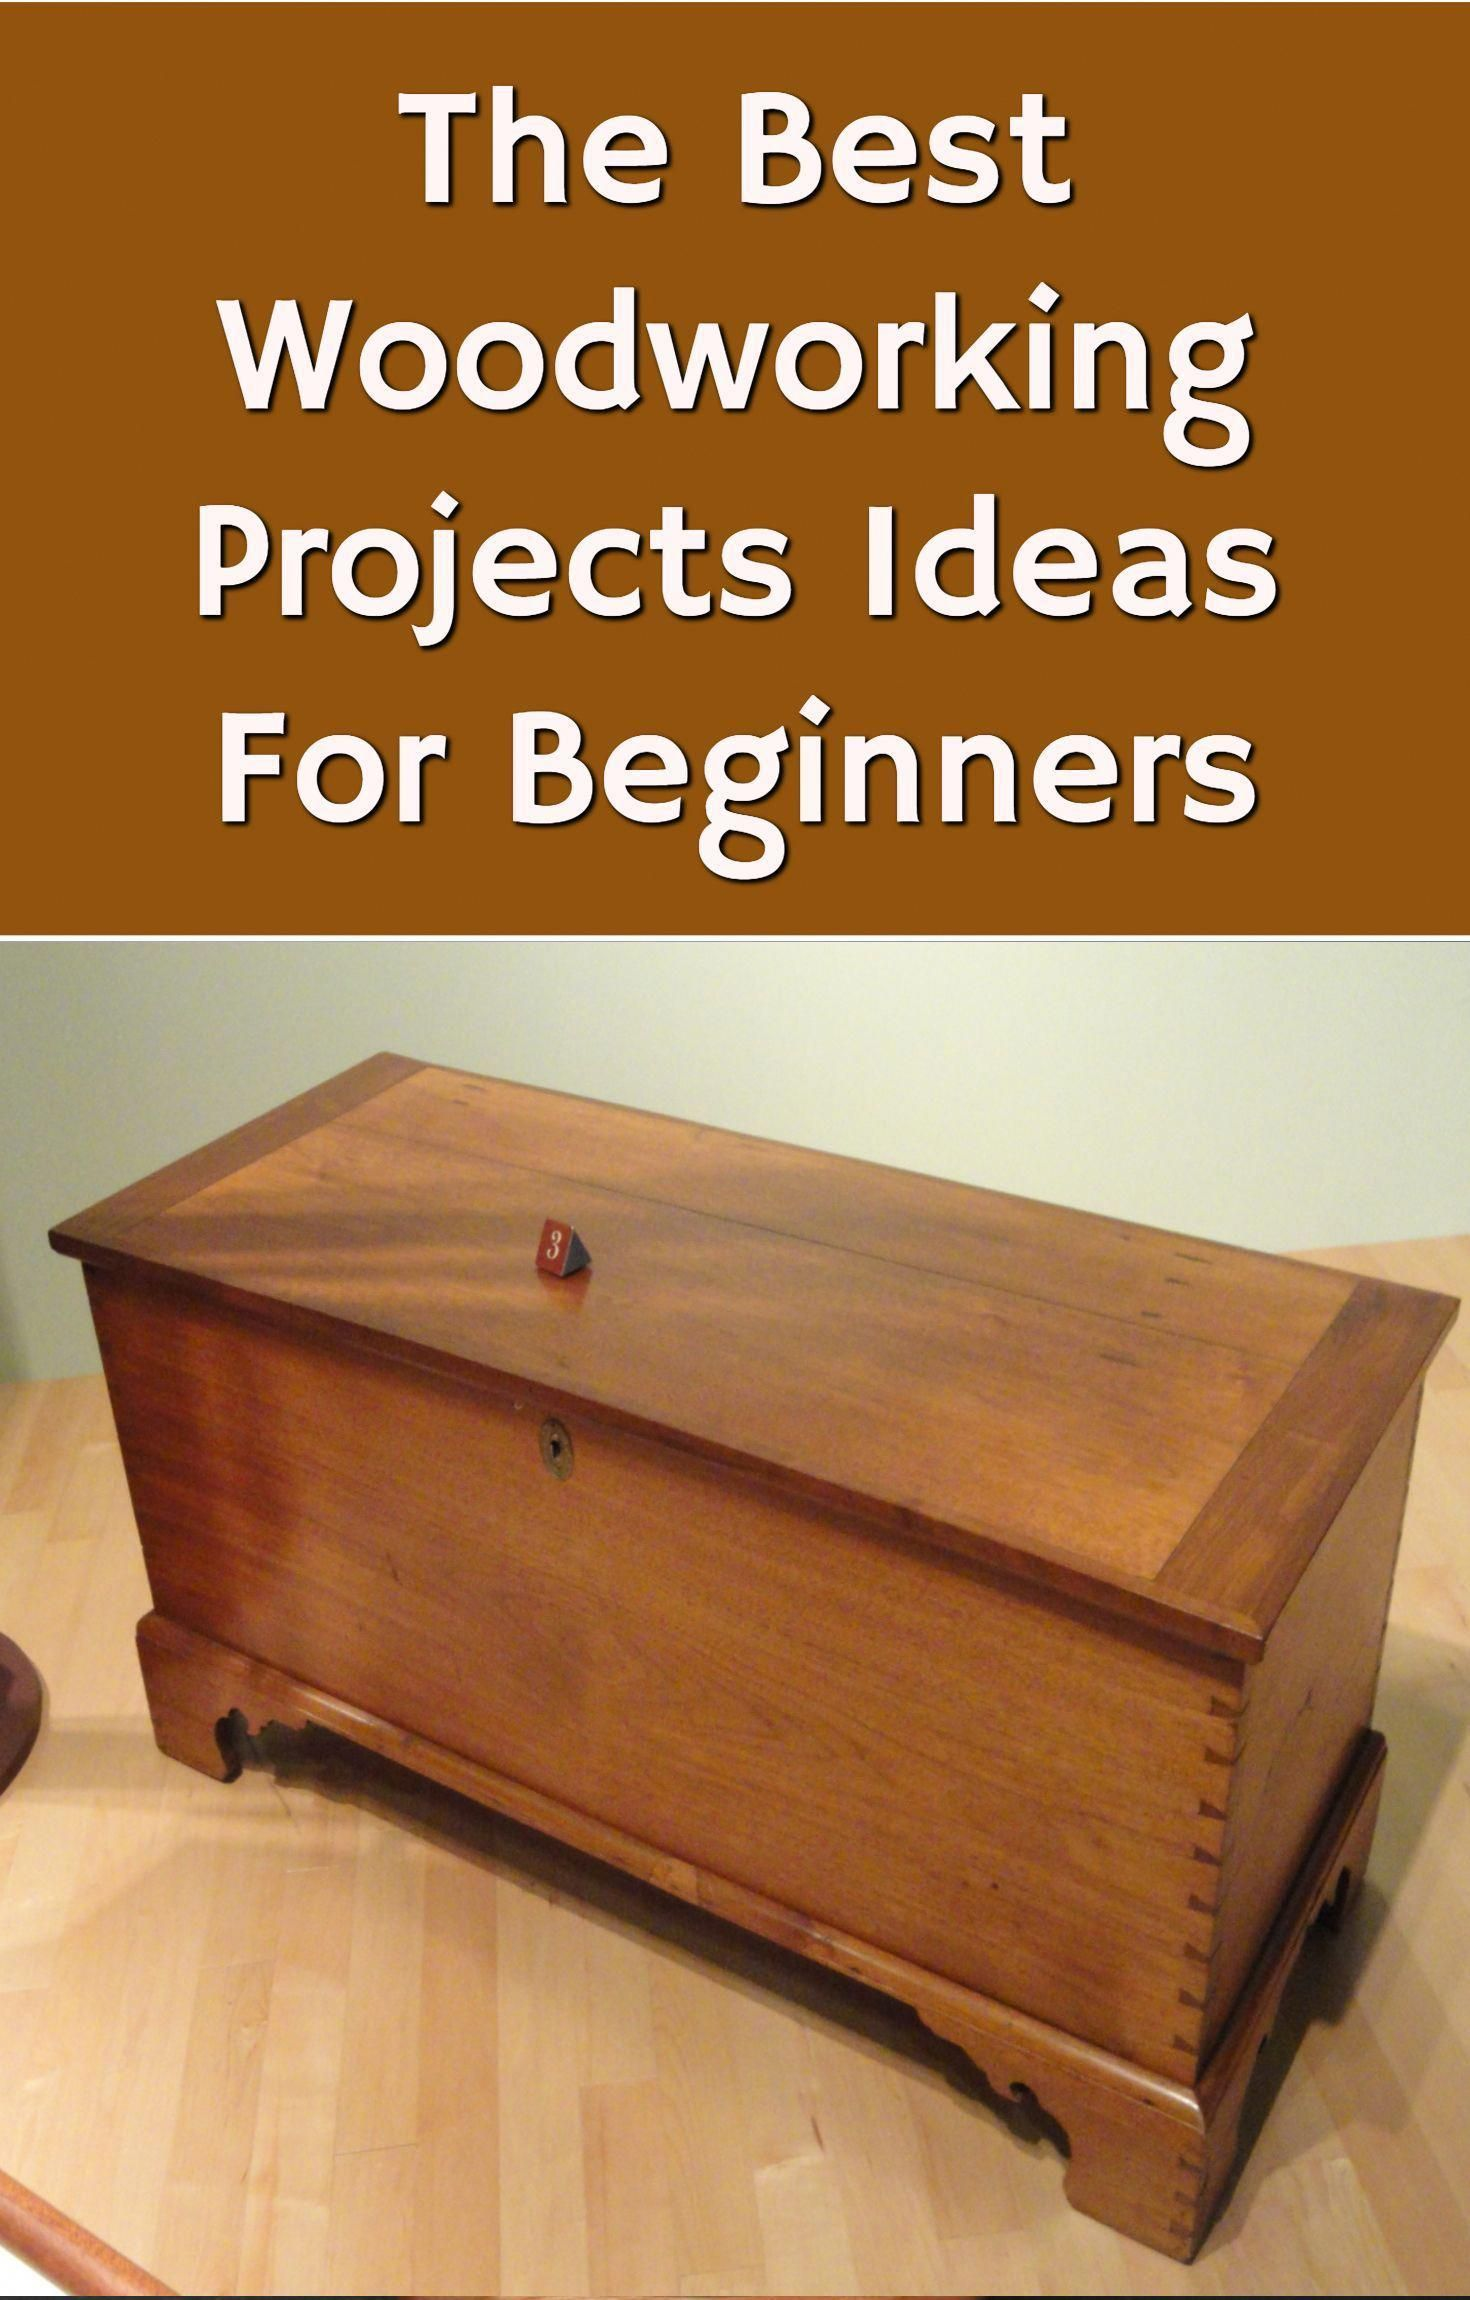 The Best Woodworking Projects Ideas For Beginners Simple